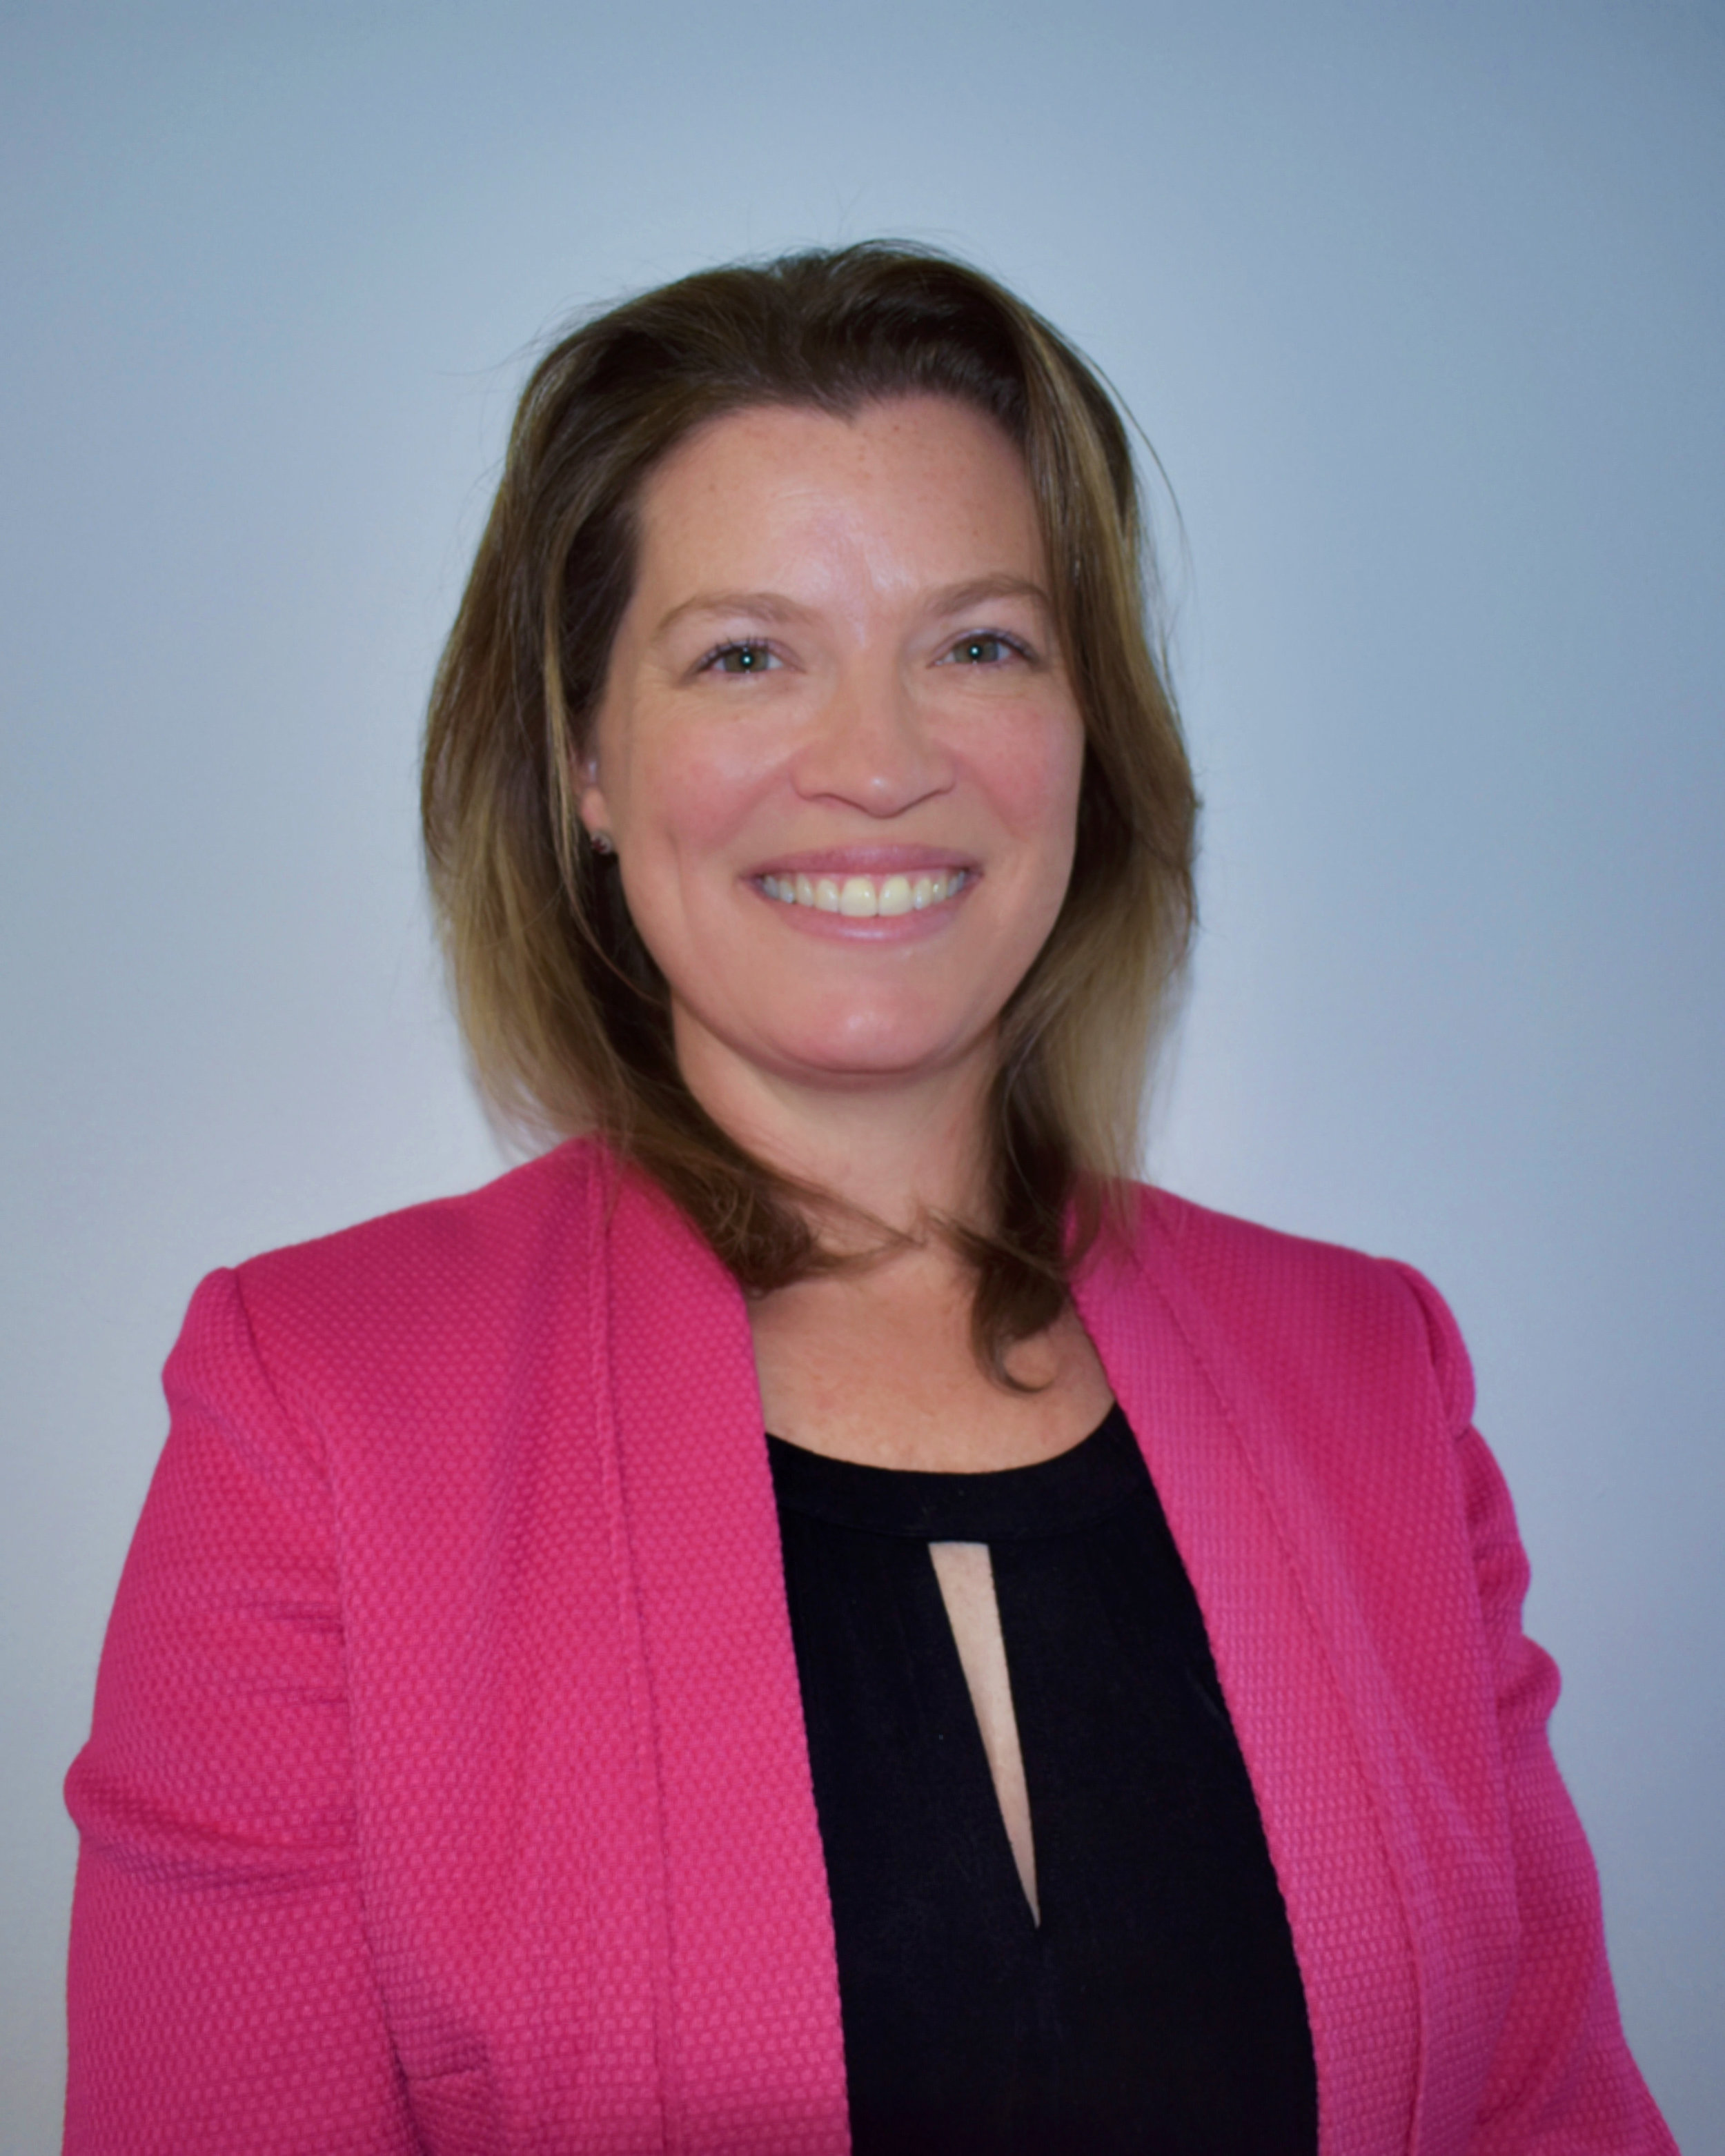 Emma Wade-Smith OBE, H.M.Trade Commissioner for Africa